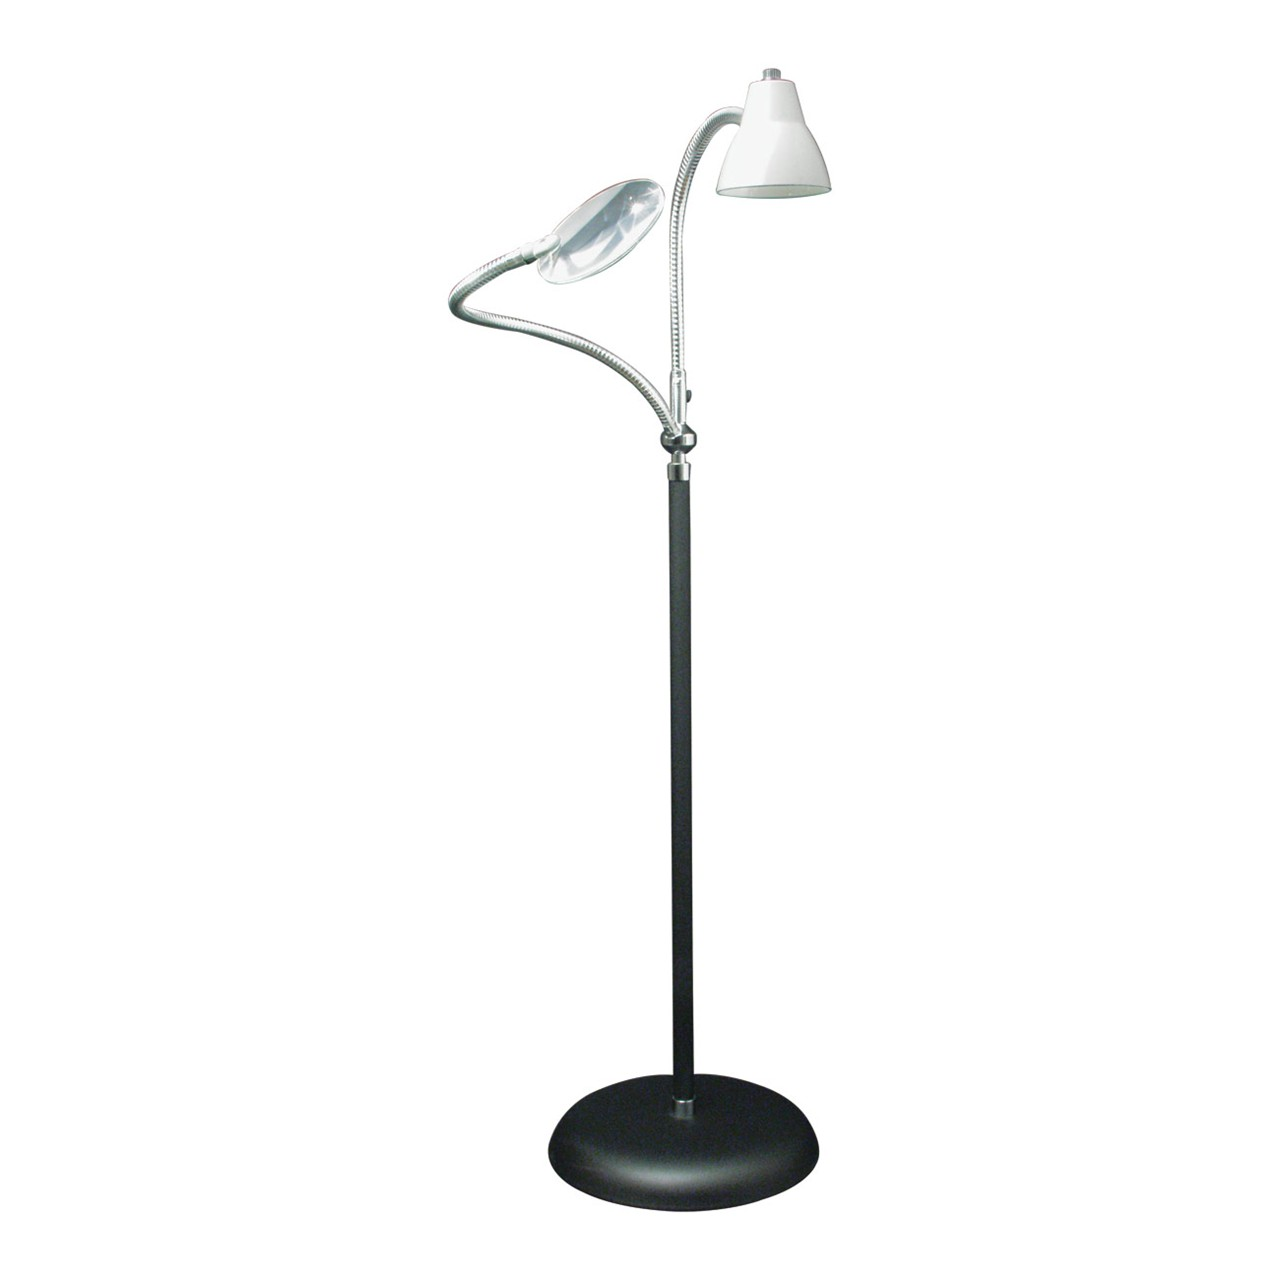 Maxiaids 2 Arm Combination Floor Lamp And 2x Magnifier